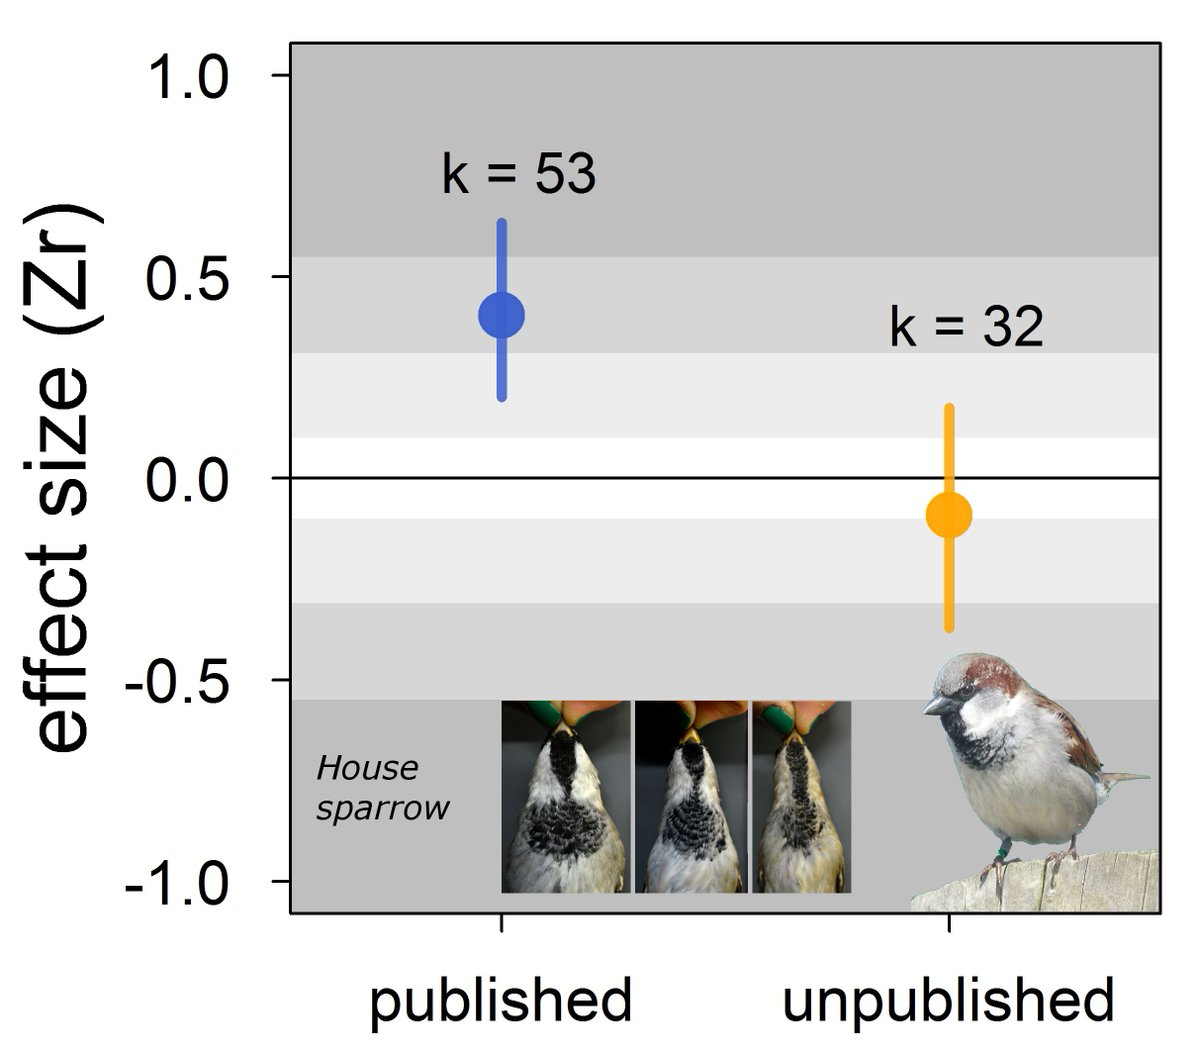 Our meta-analysis does not support the status signalling hypothesis in house sparrows. Instead, it highlights strong and misleading publication bias. biorxiv.org/content/early/… … #ornithology #metaanalysis #animalbehaviour #publicationbias